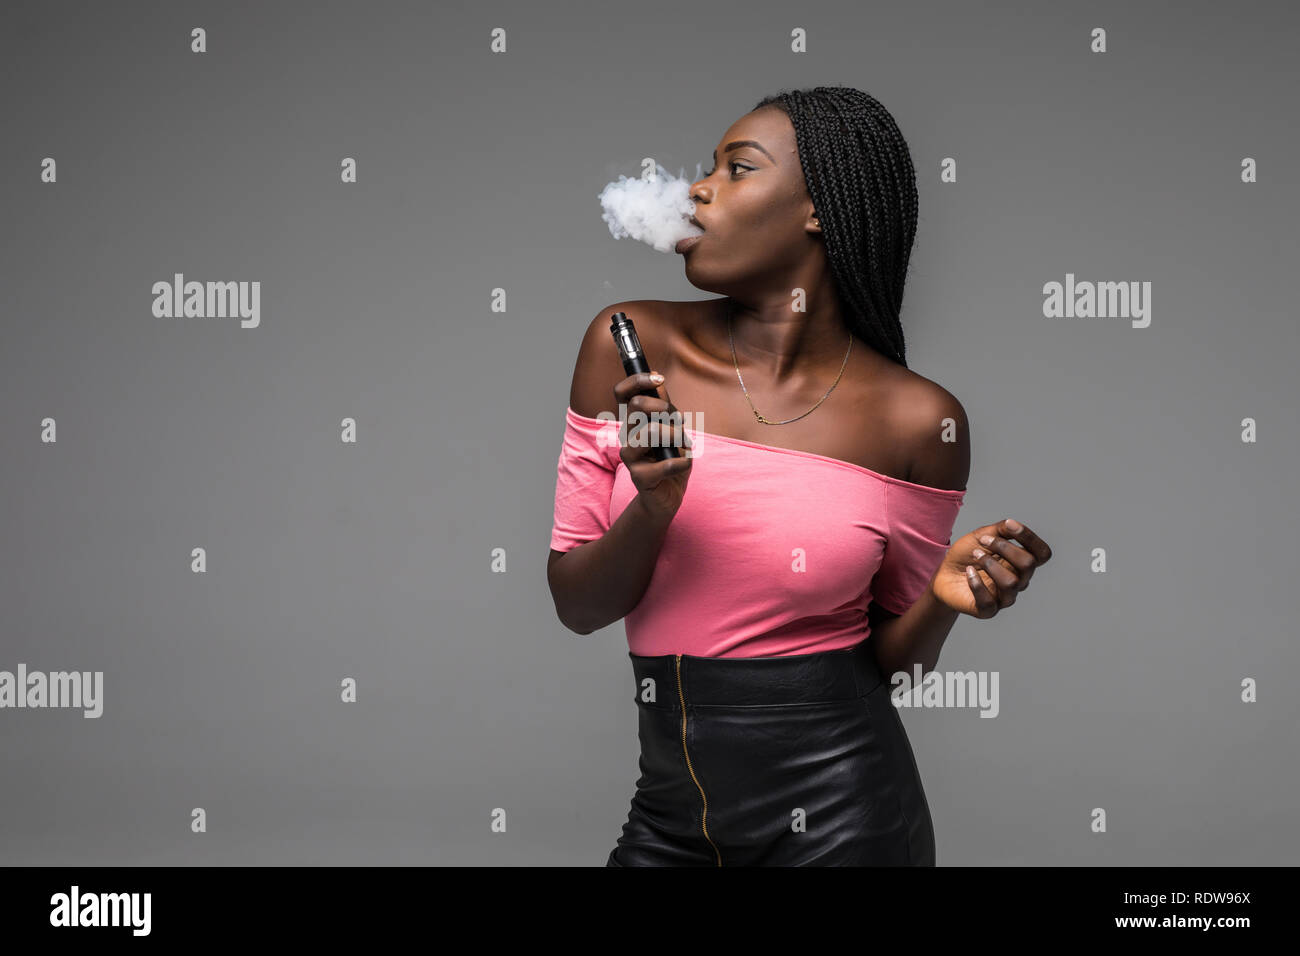 African woman smoking or vaping e-cig or electronic cigarette holding a mod with a lot of clouds on black background - Stock Image